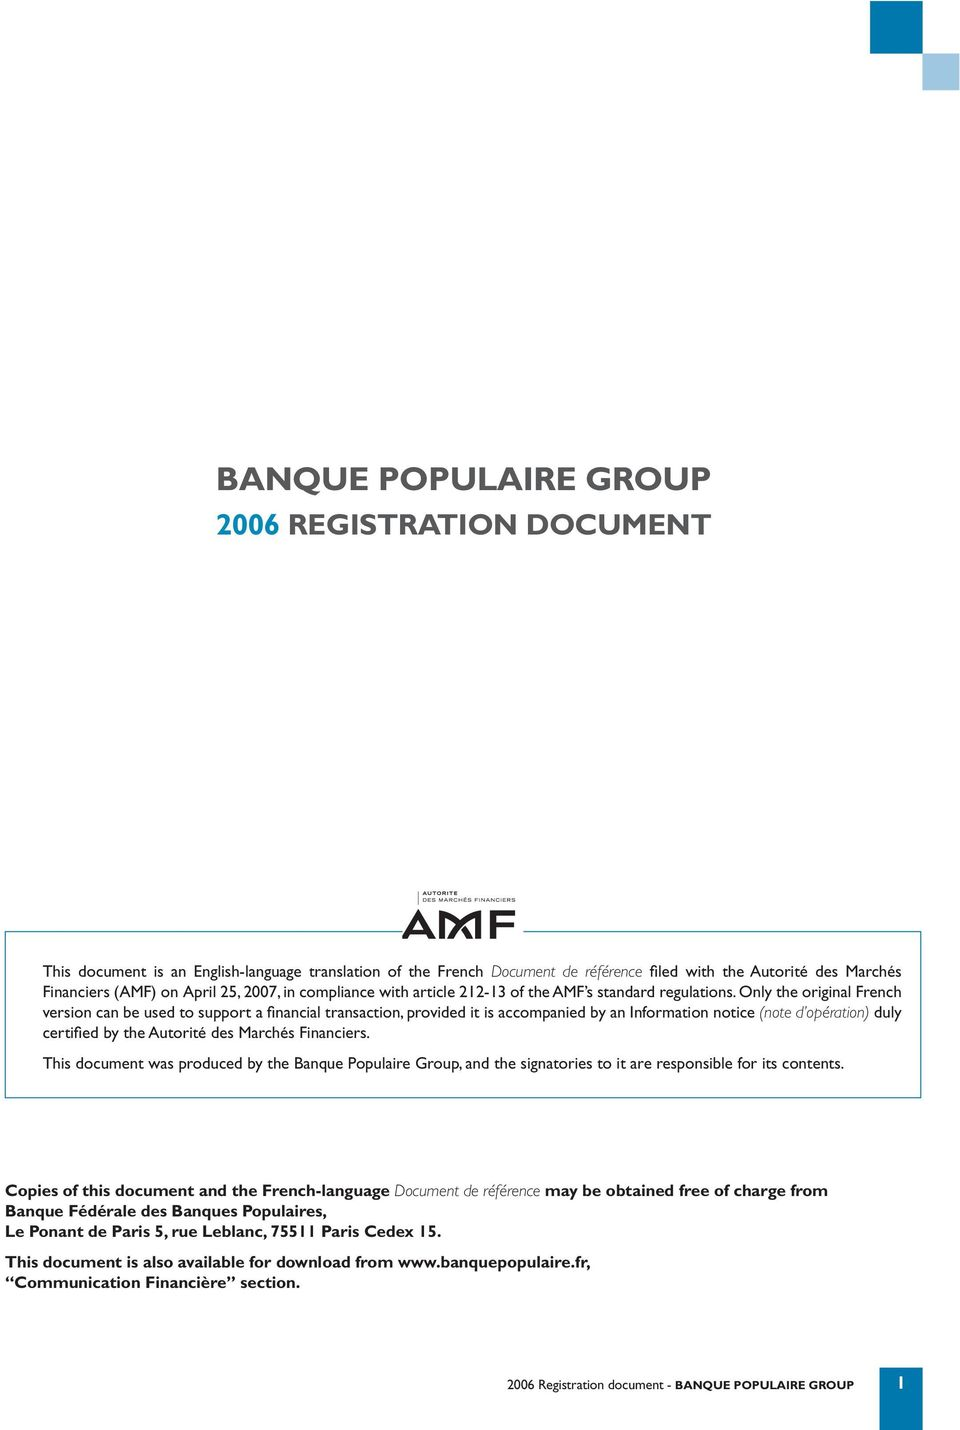 Only the original French version can be used to support a fi nancial transaction, provided it is accompanied by an Information notice (note d opération) duly certifi ed by the Autorité des Marchés